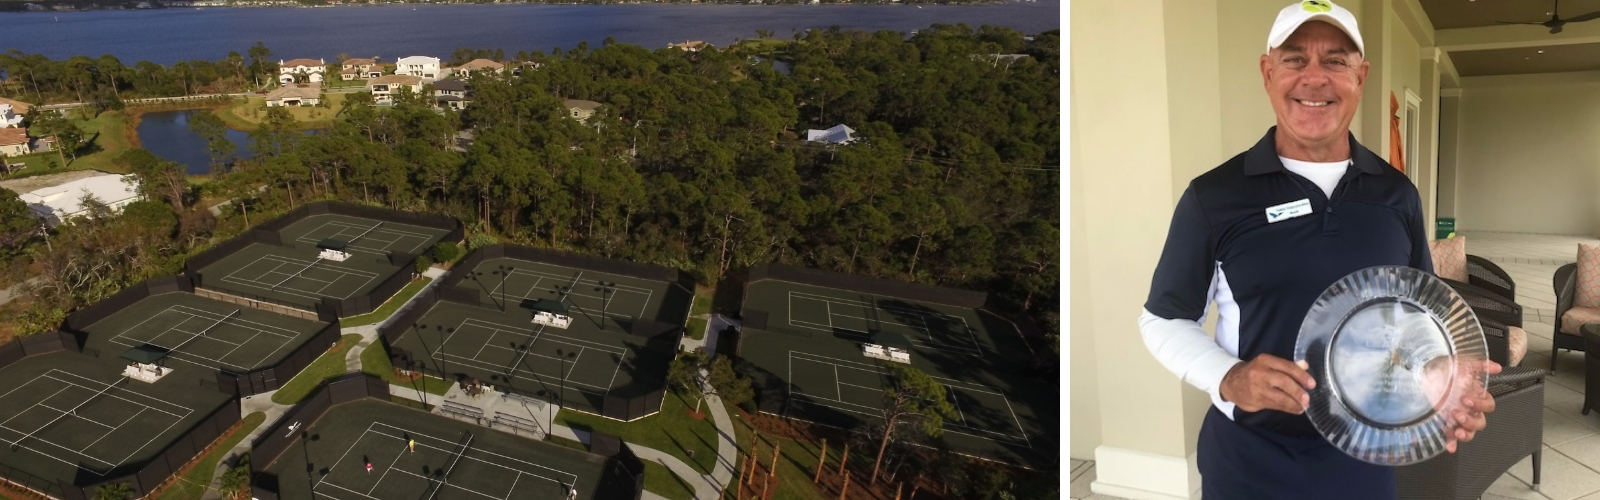 HARBOUR RIDGE RECEIVES 2018 USTA TENNIS FACILITY OF THE YEAR AWARD